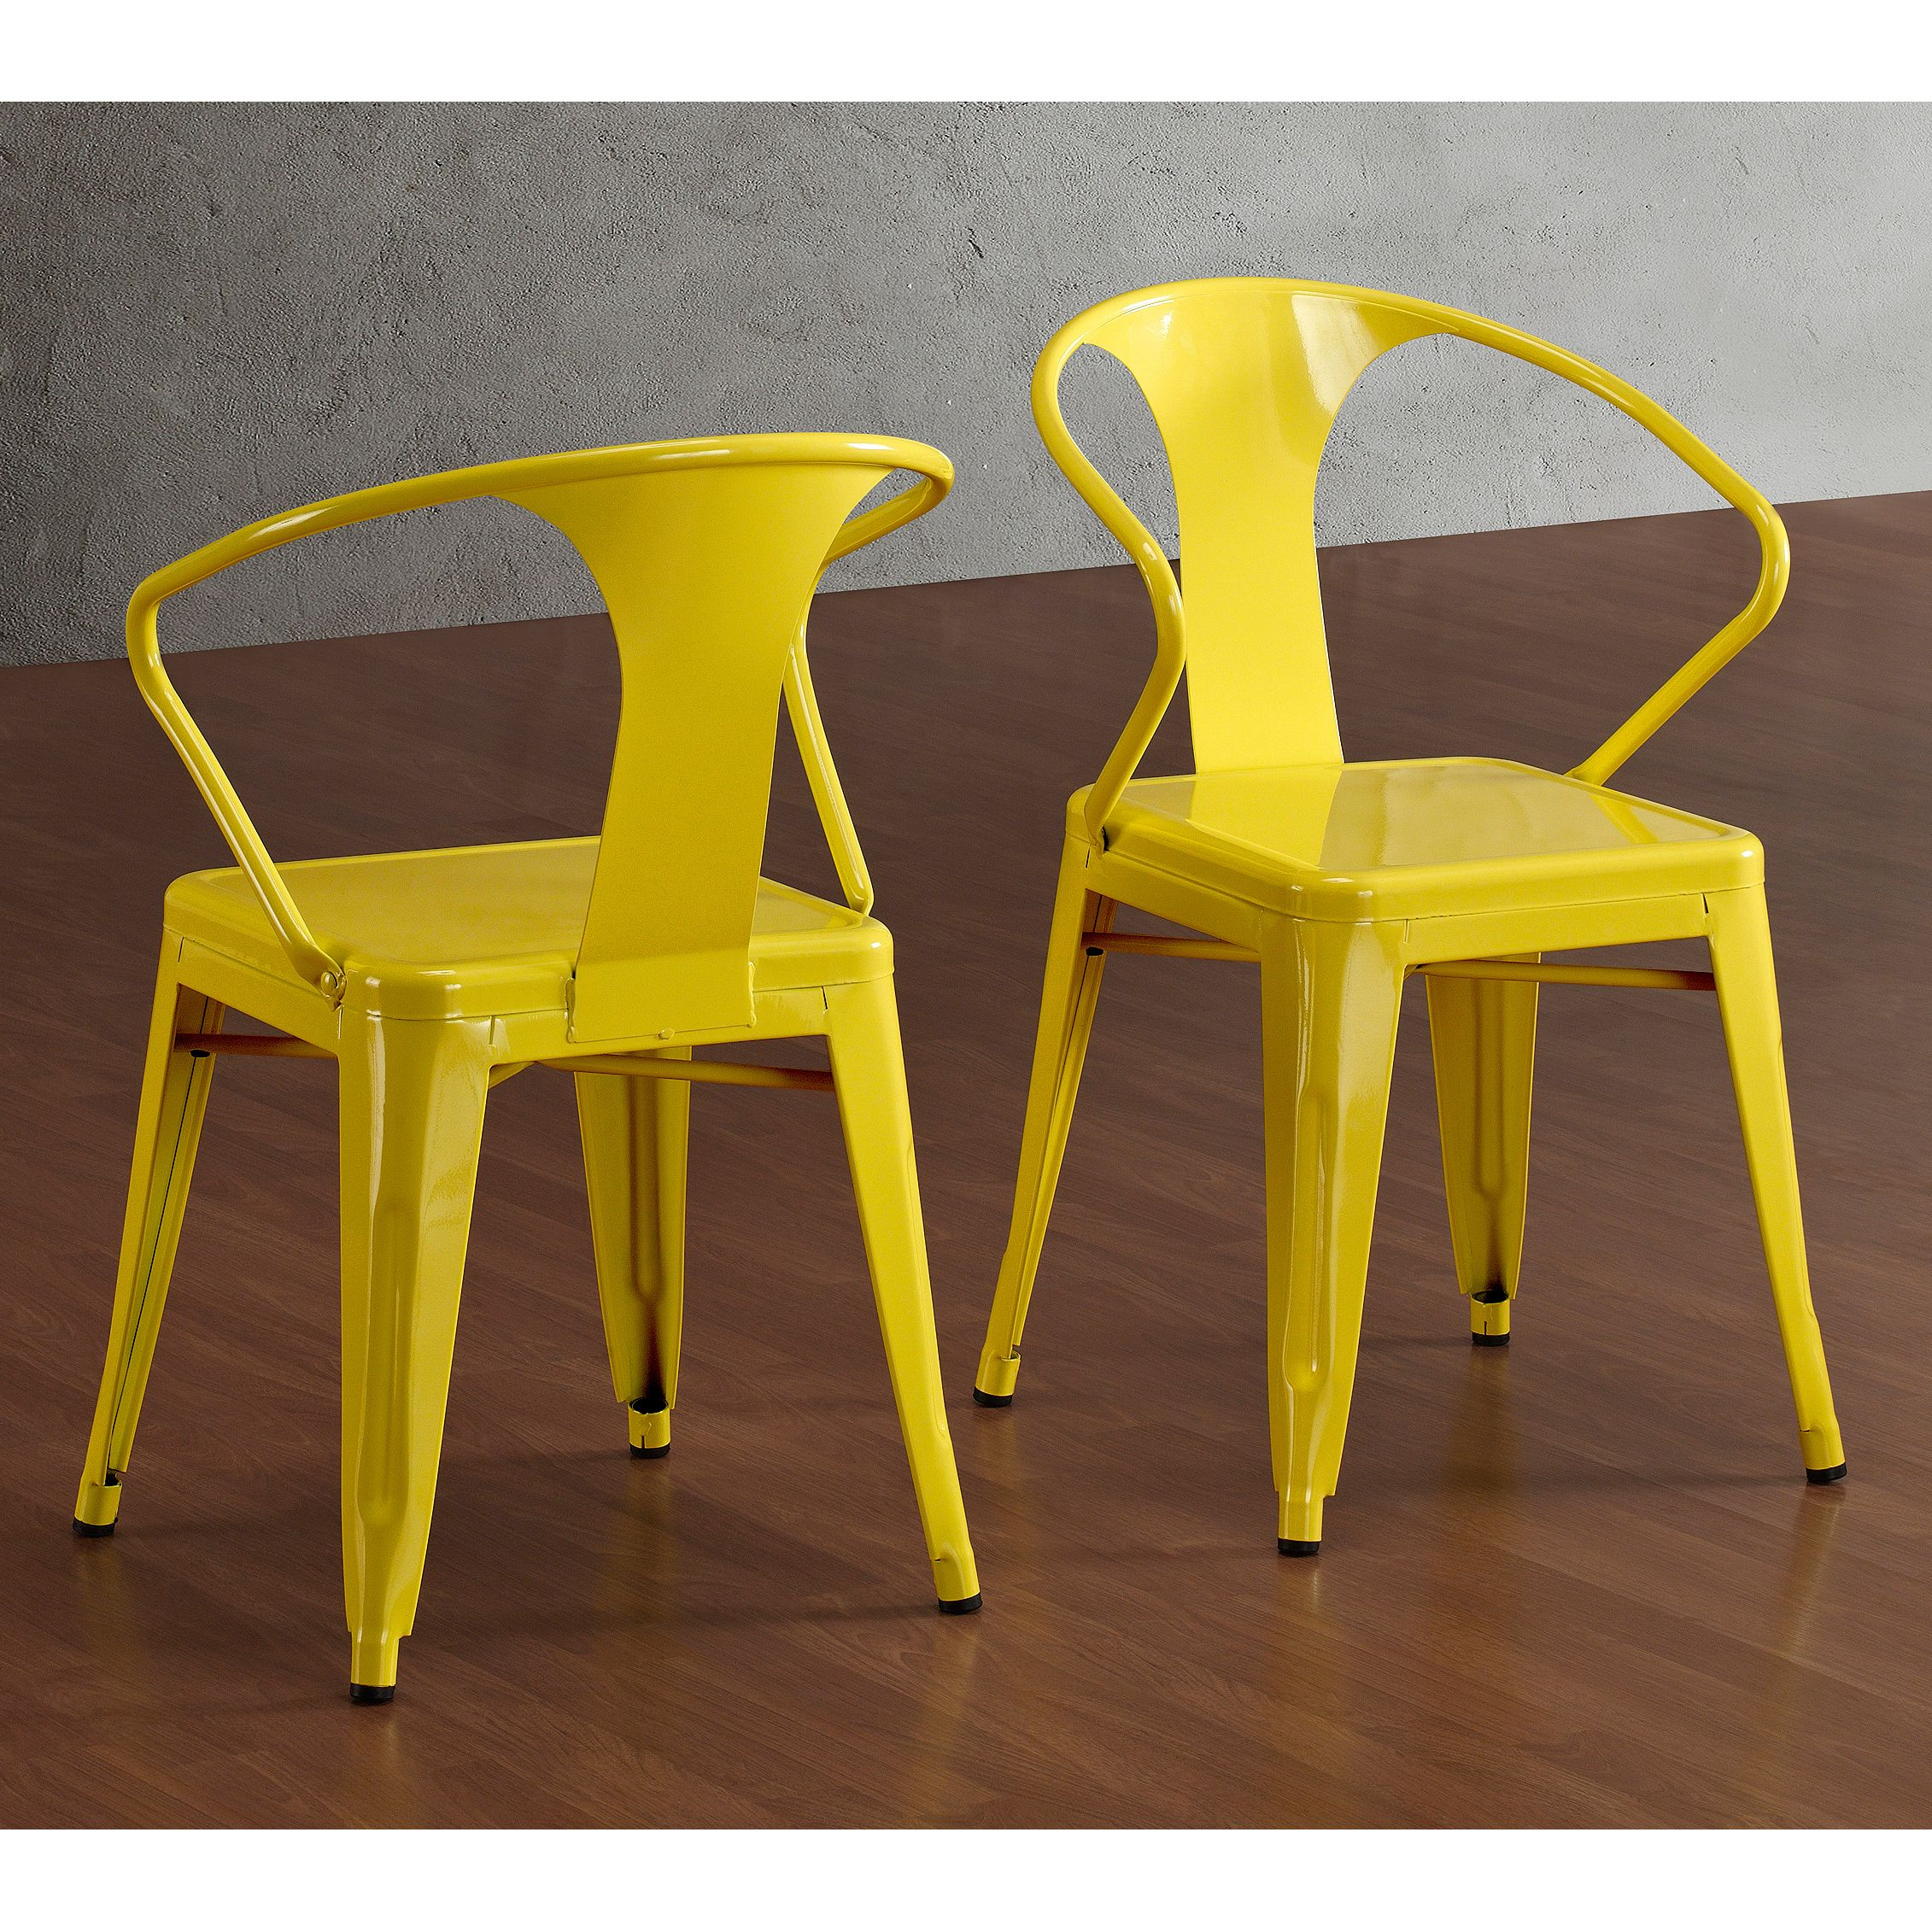 Modern Yellow Metal Stacking Chairs For The Wood Claw Foot Table. Can Stack  And Store